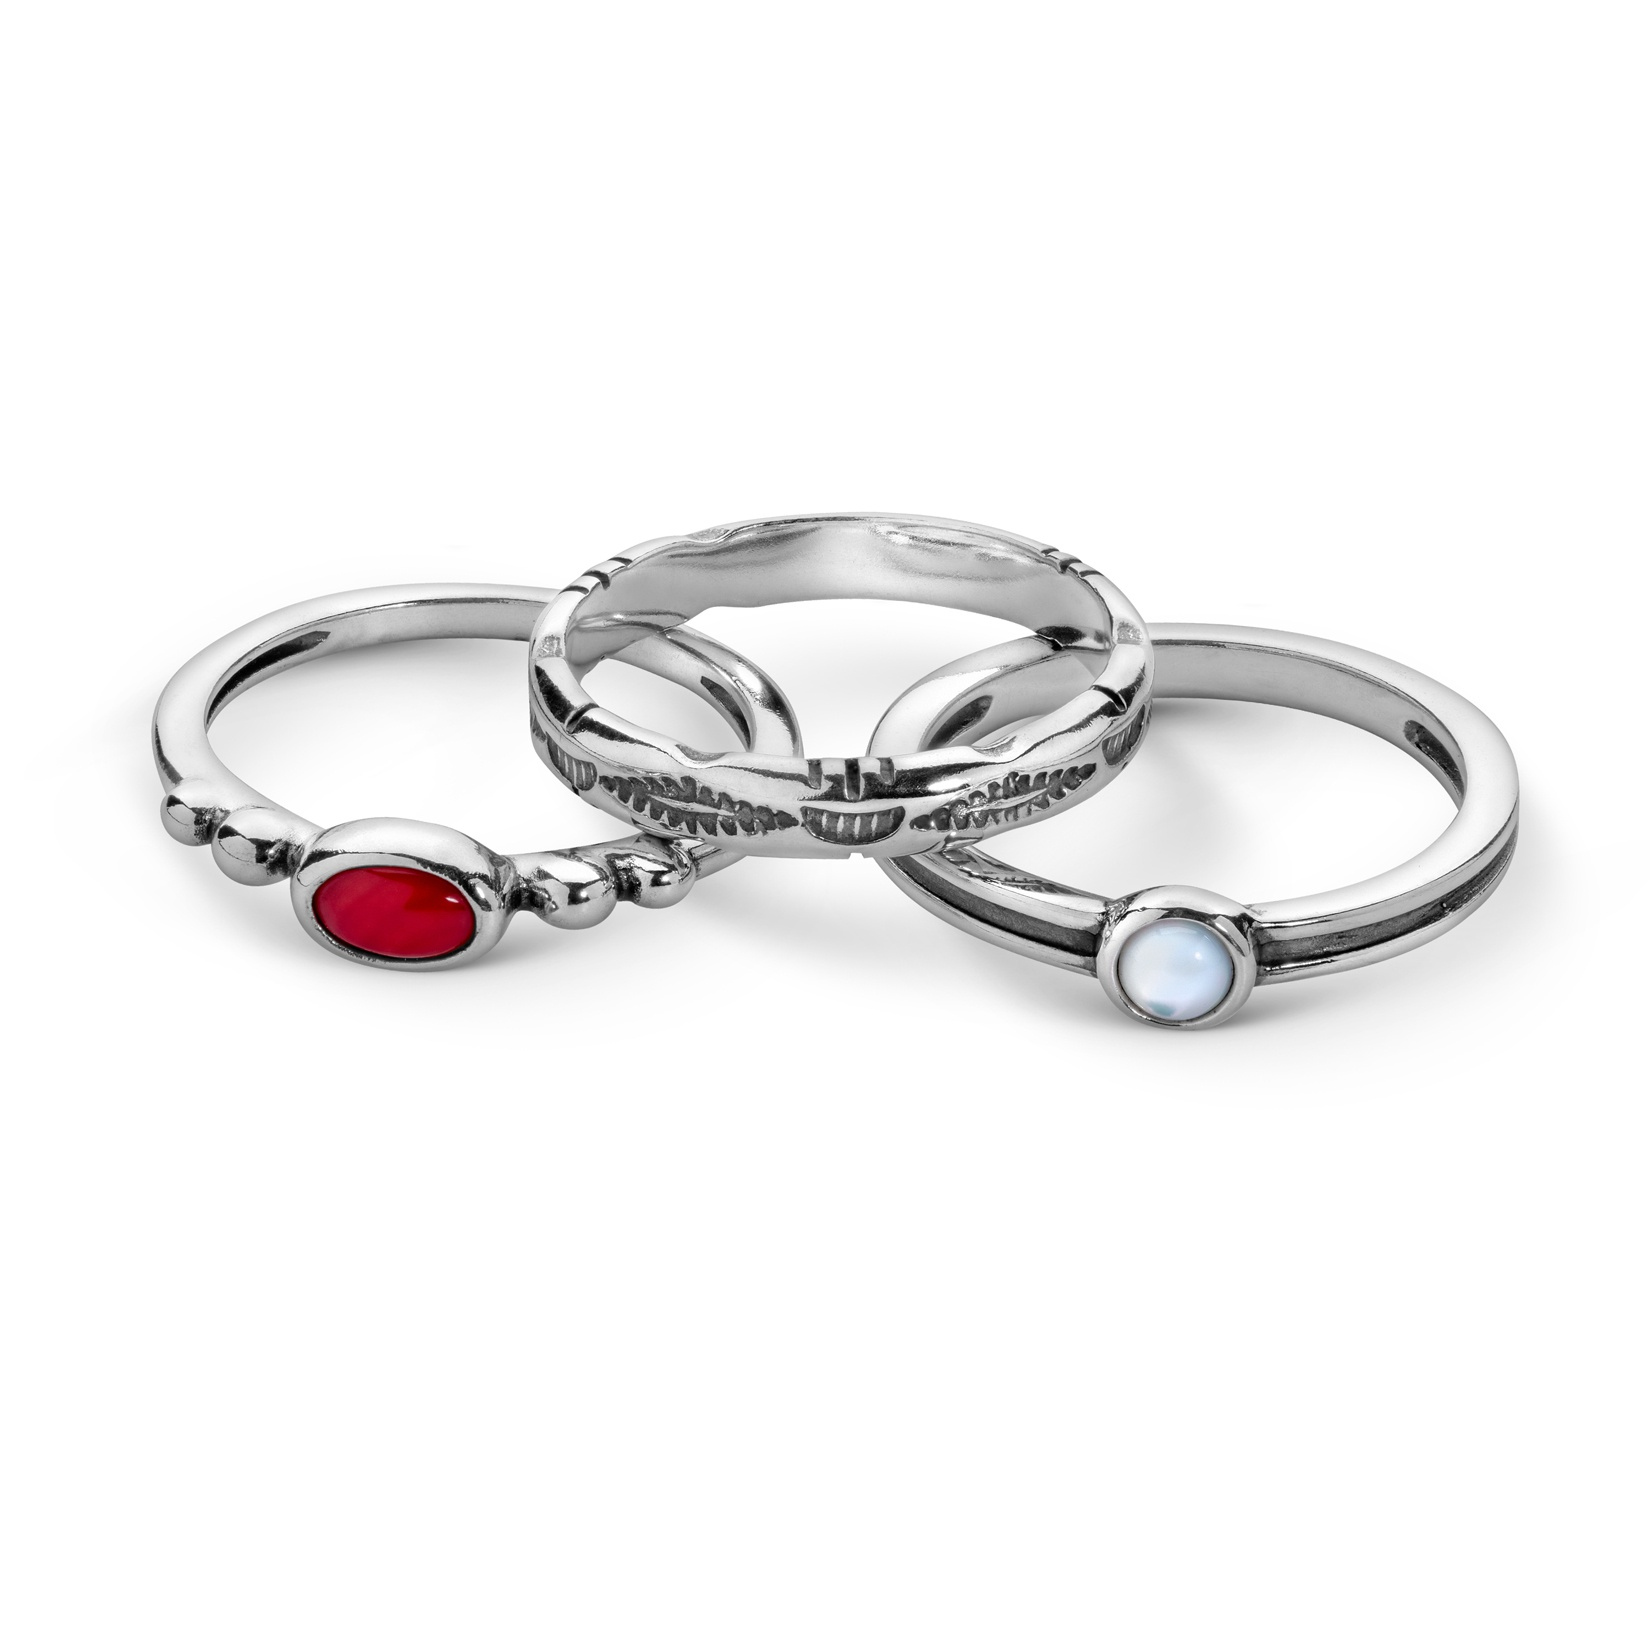 Sterling Silver, Red Coral, White Mother of Pearl 3 Piece Ring Set Size 5 to 10